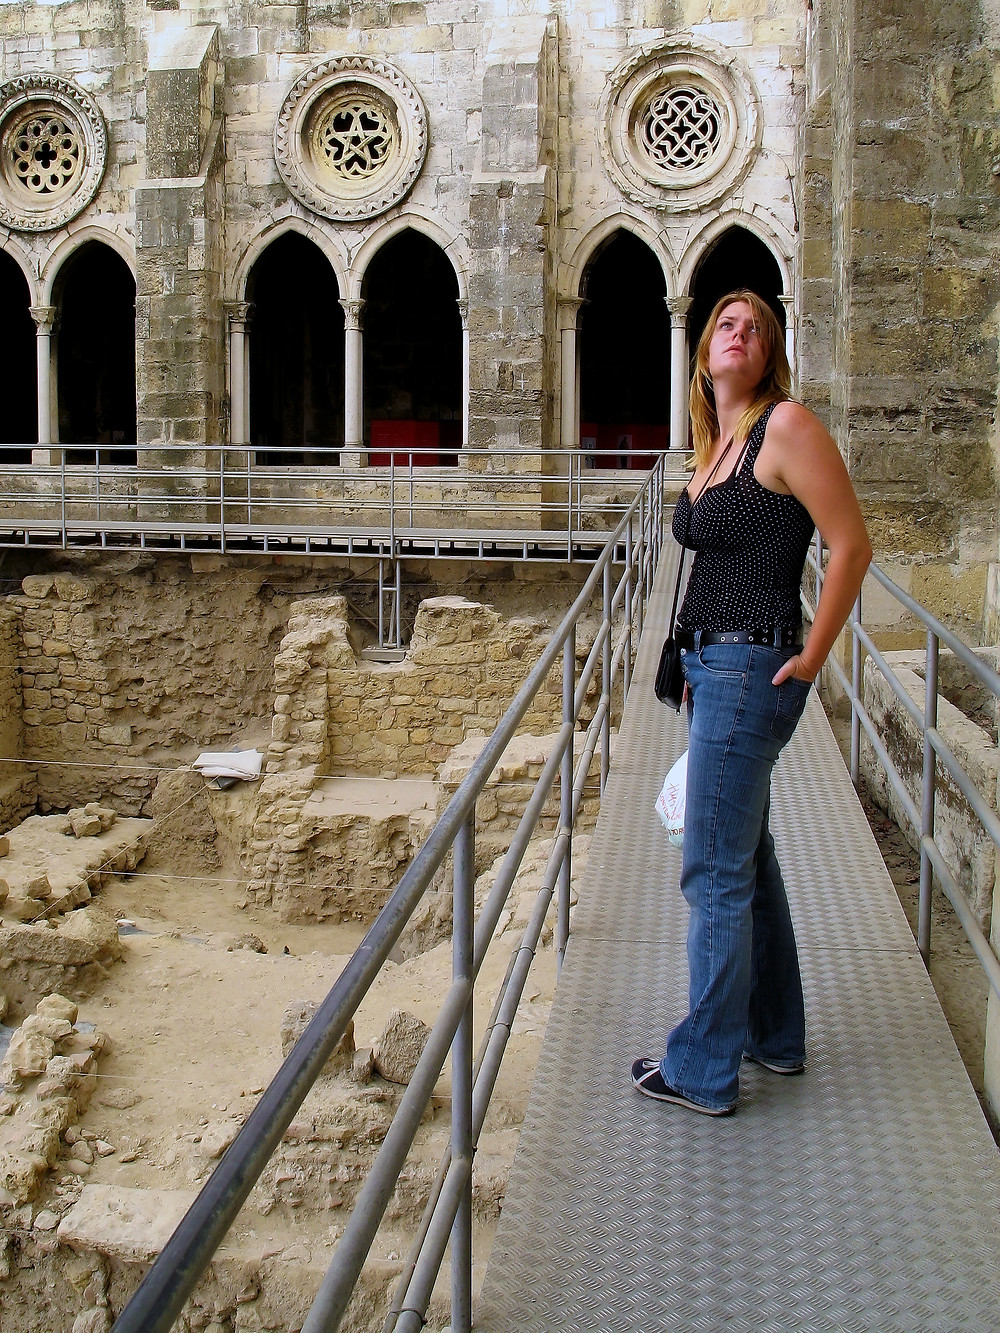 Lisa feeling the history inside the Sé Cathedral in Lisbon, Portugal.